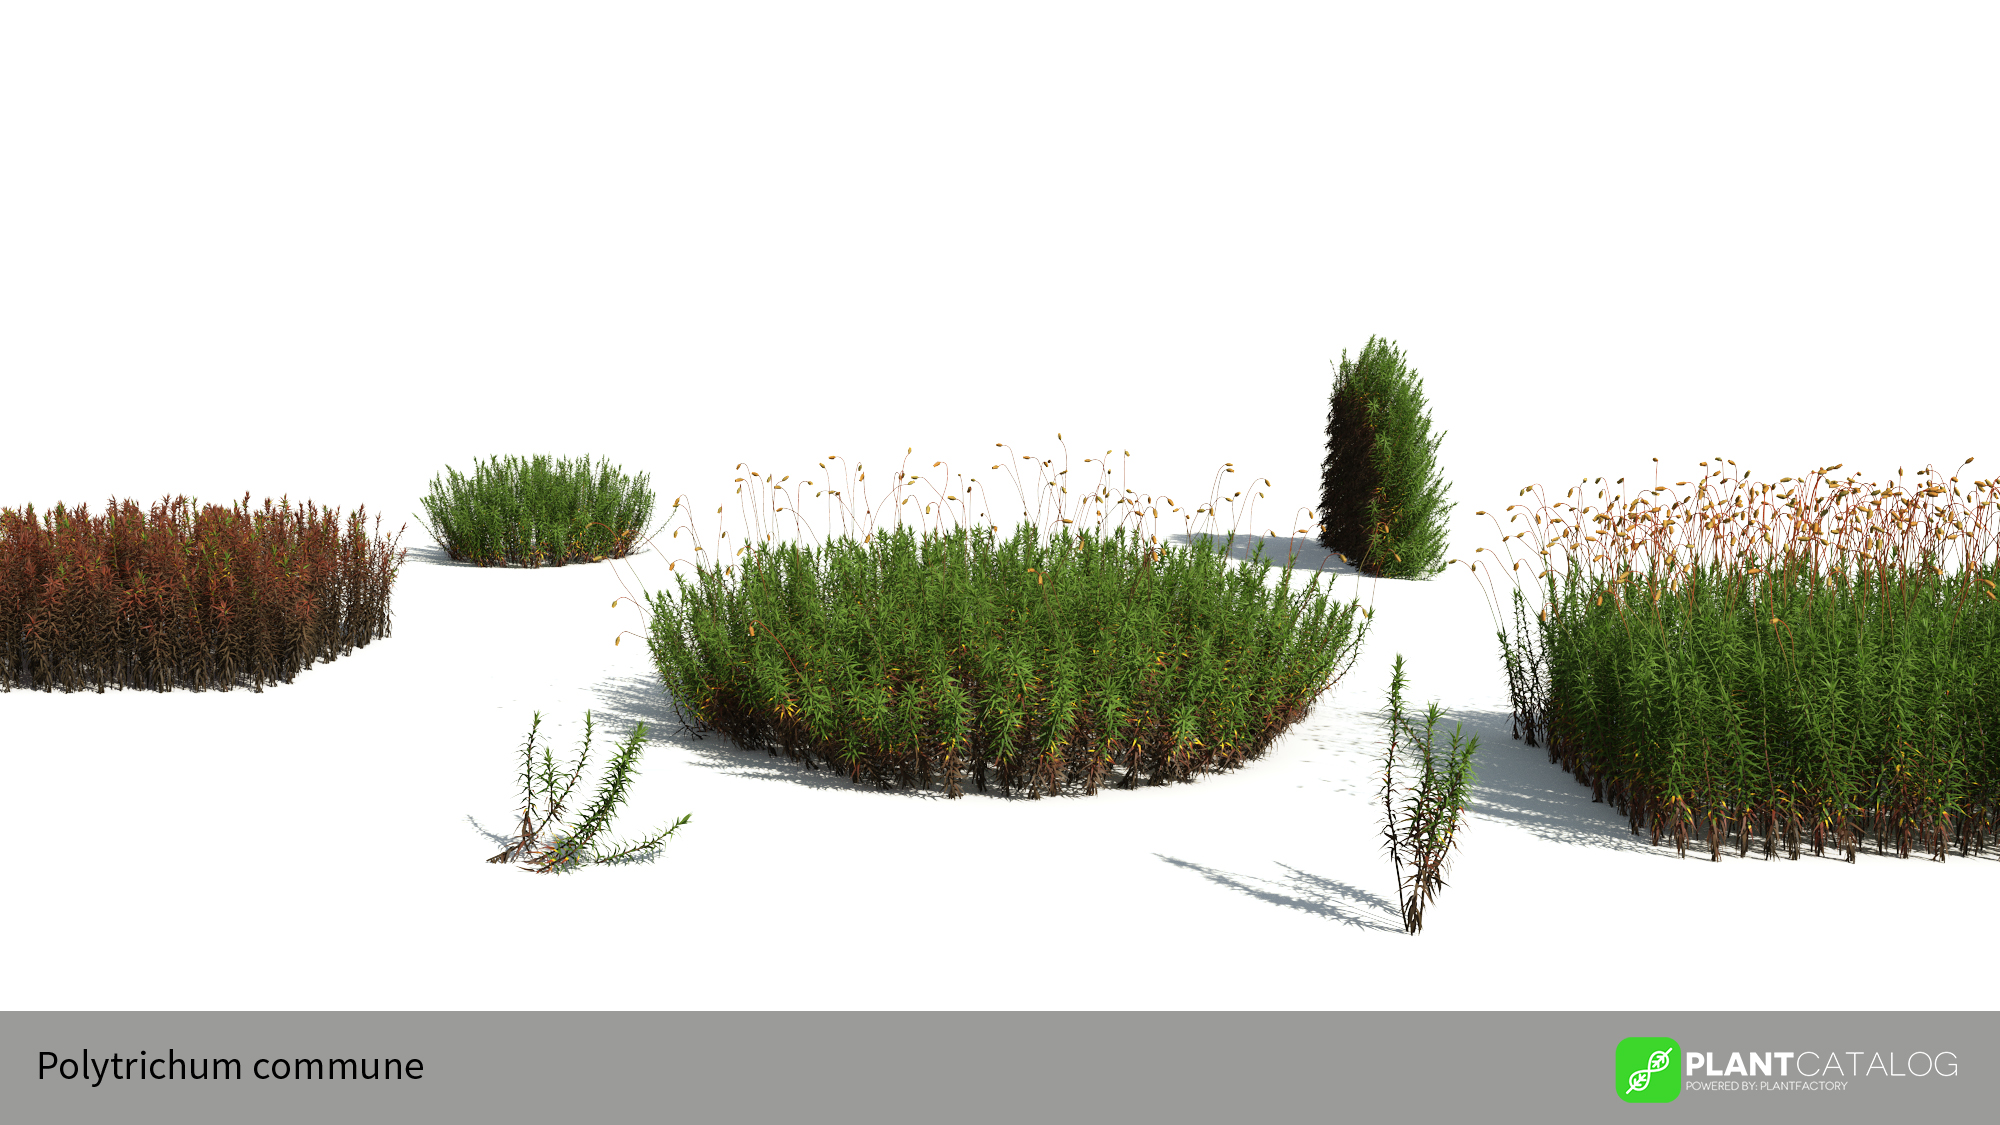 Polytrichum_com3D model of the Common haircap moss - Polytrichum commune - from the PlantCatalog, rendered in VUEmune_presentation